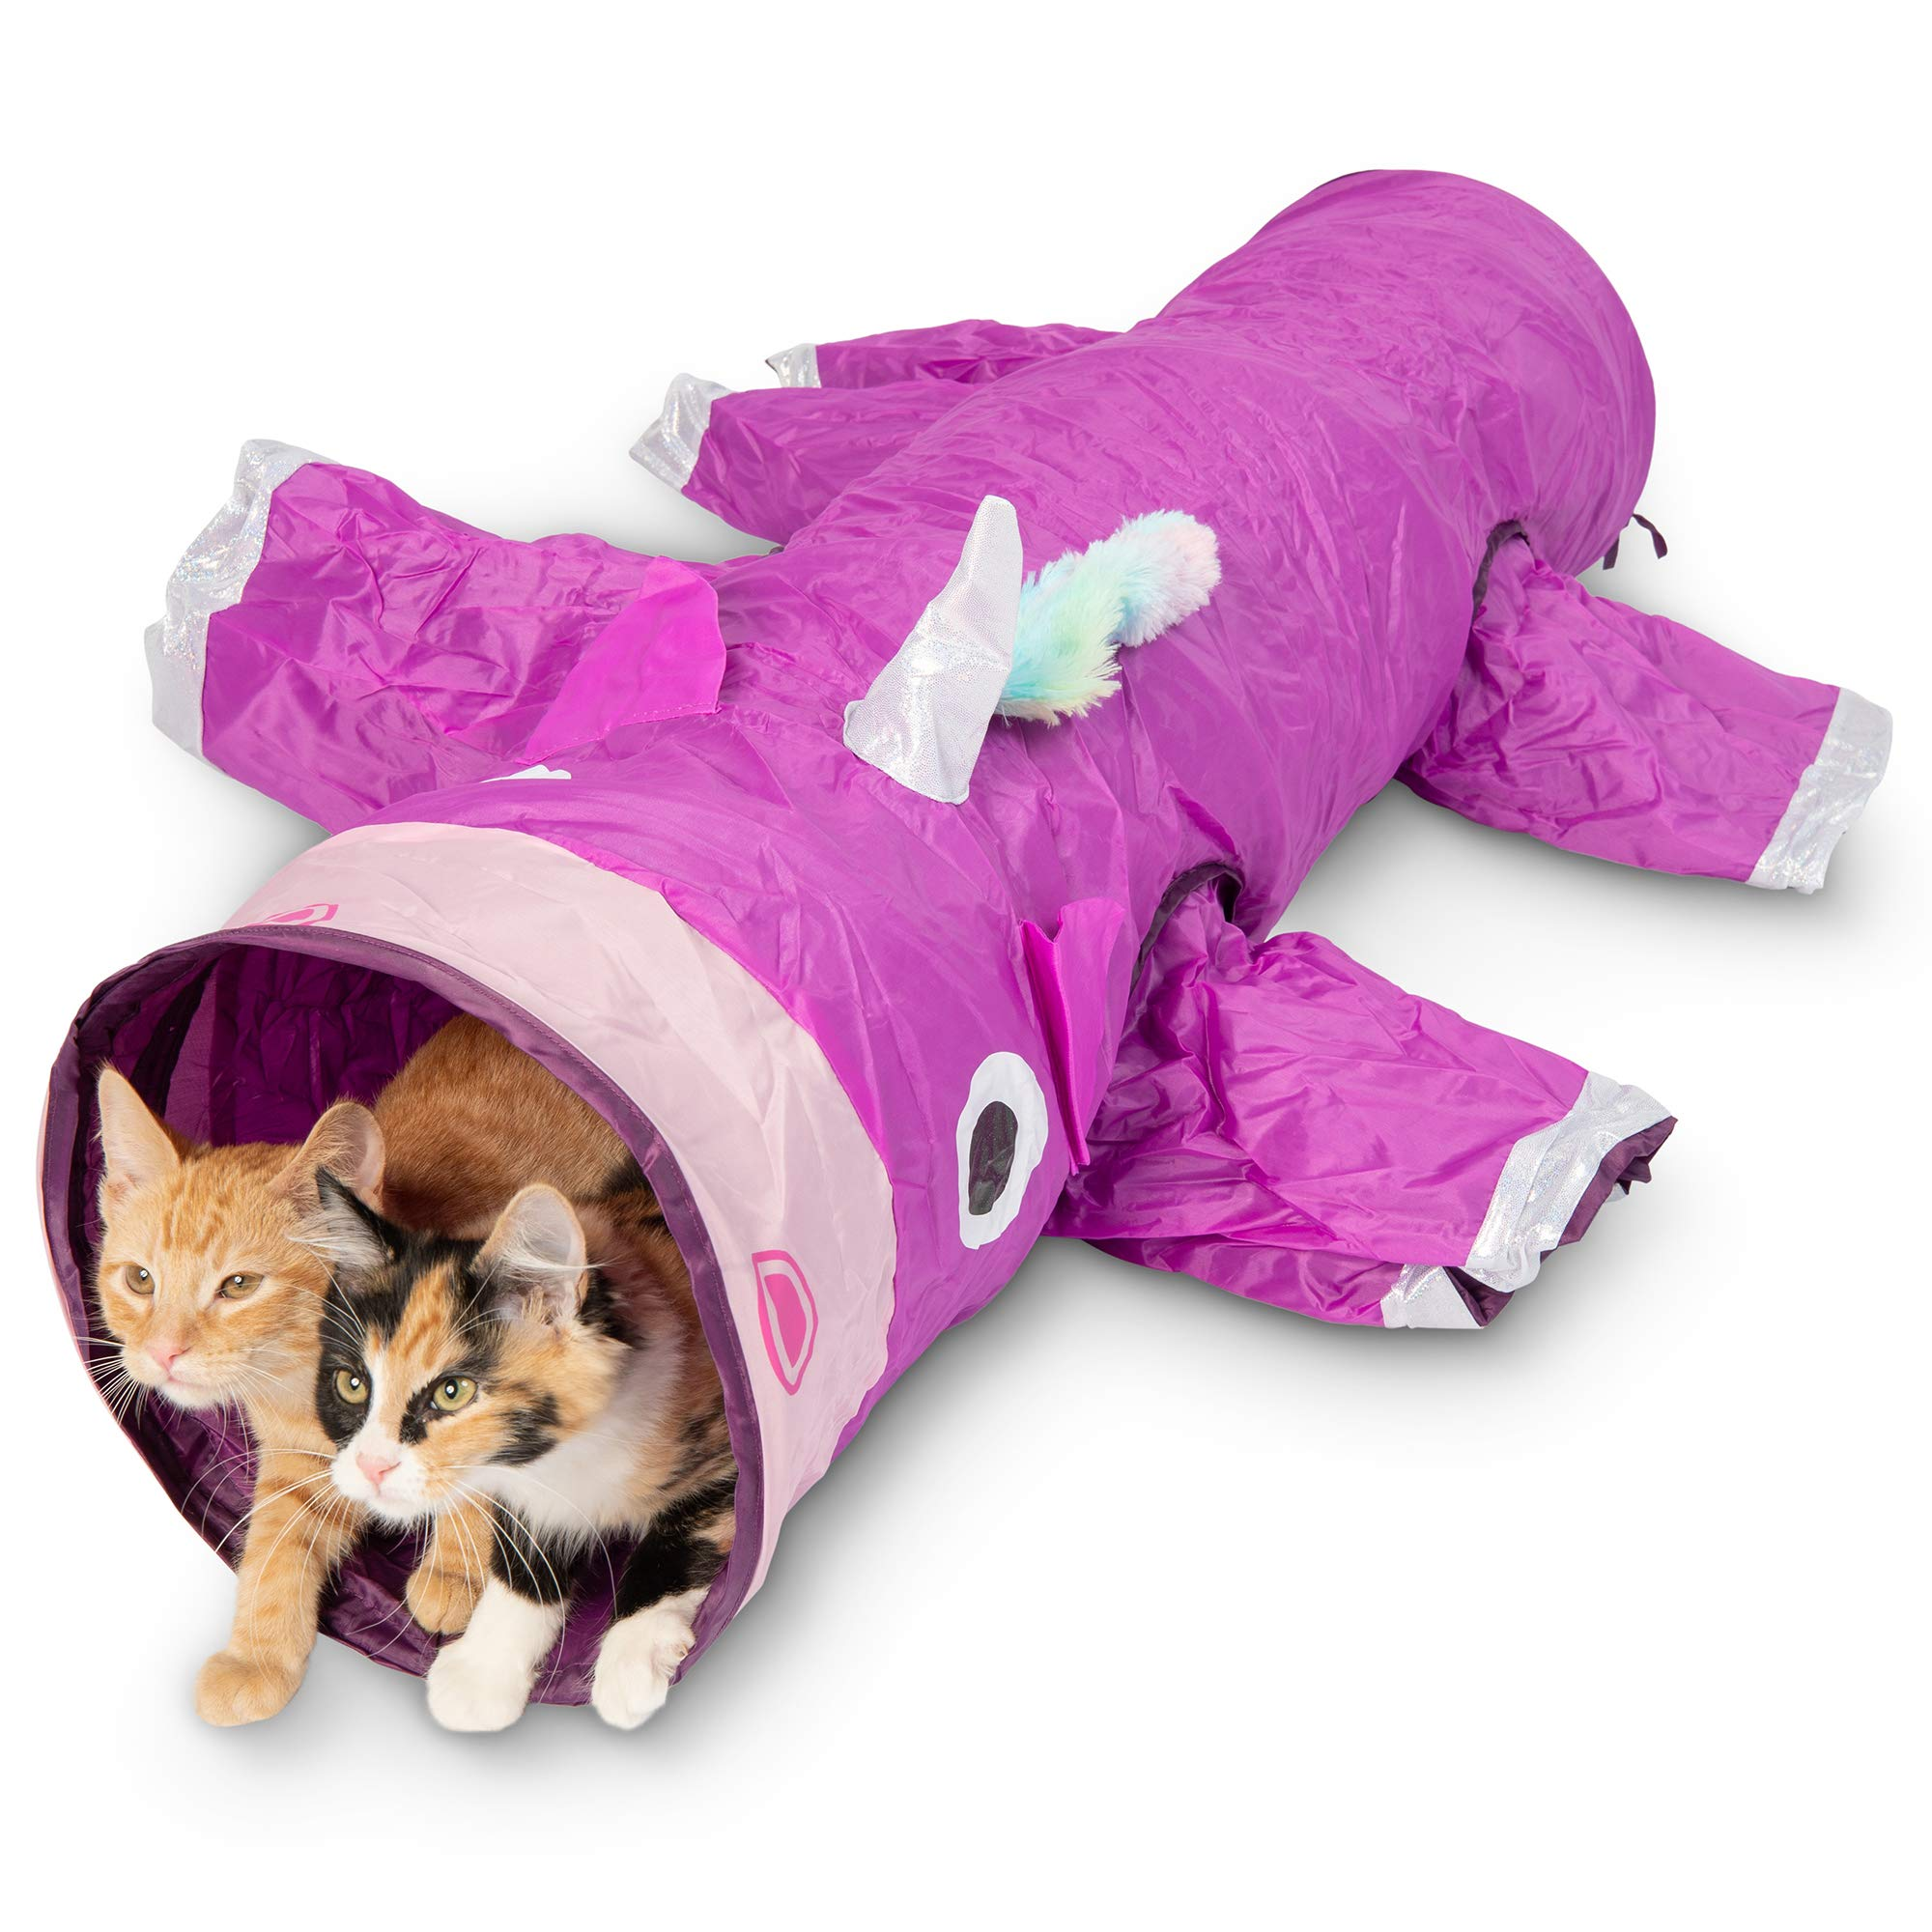 Pet Craft Supply Magic Mewnicorn Multi Cat Tunnel Boredom Relief Toys with Crinkle Feather String for Dogs, Cats, Rabbits, Kittens and Guinea Pigs for Hiding Hunting and Resting